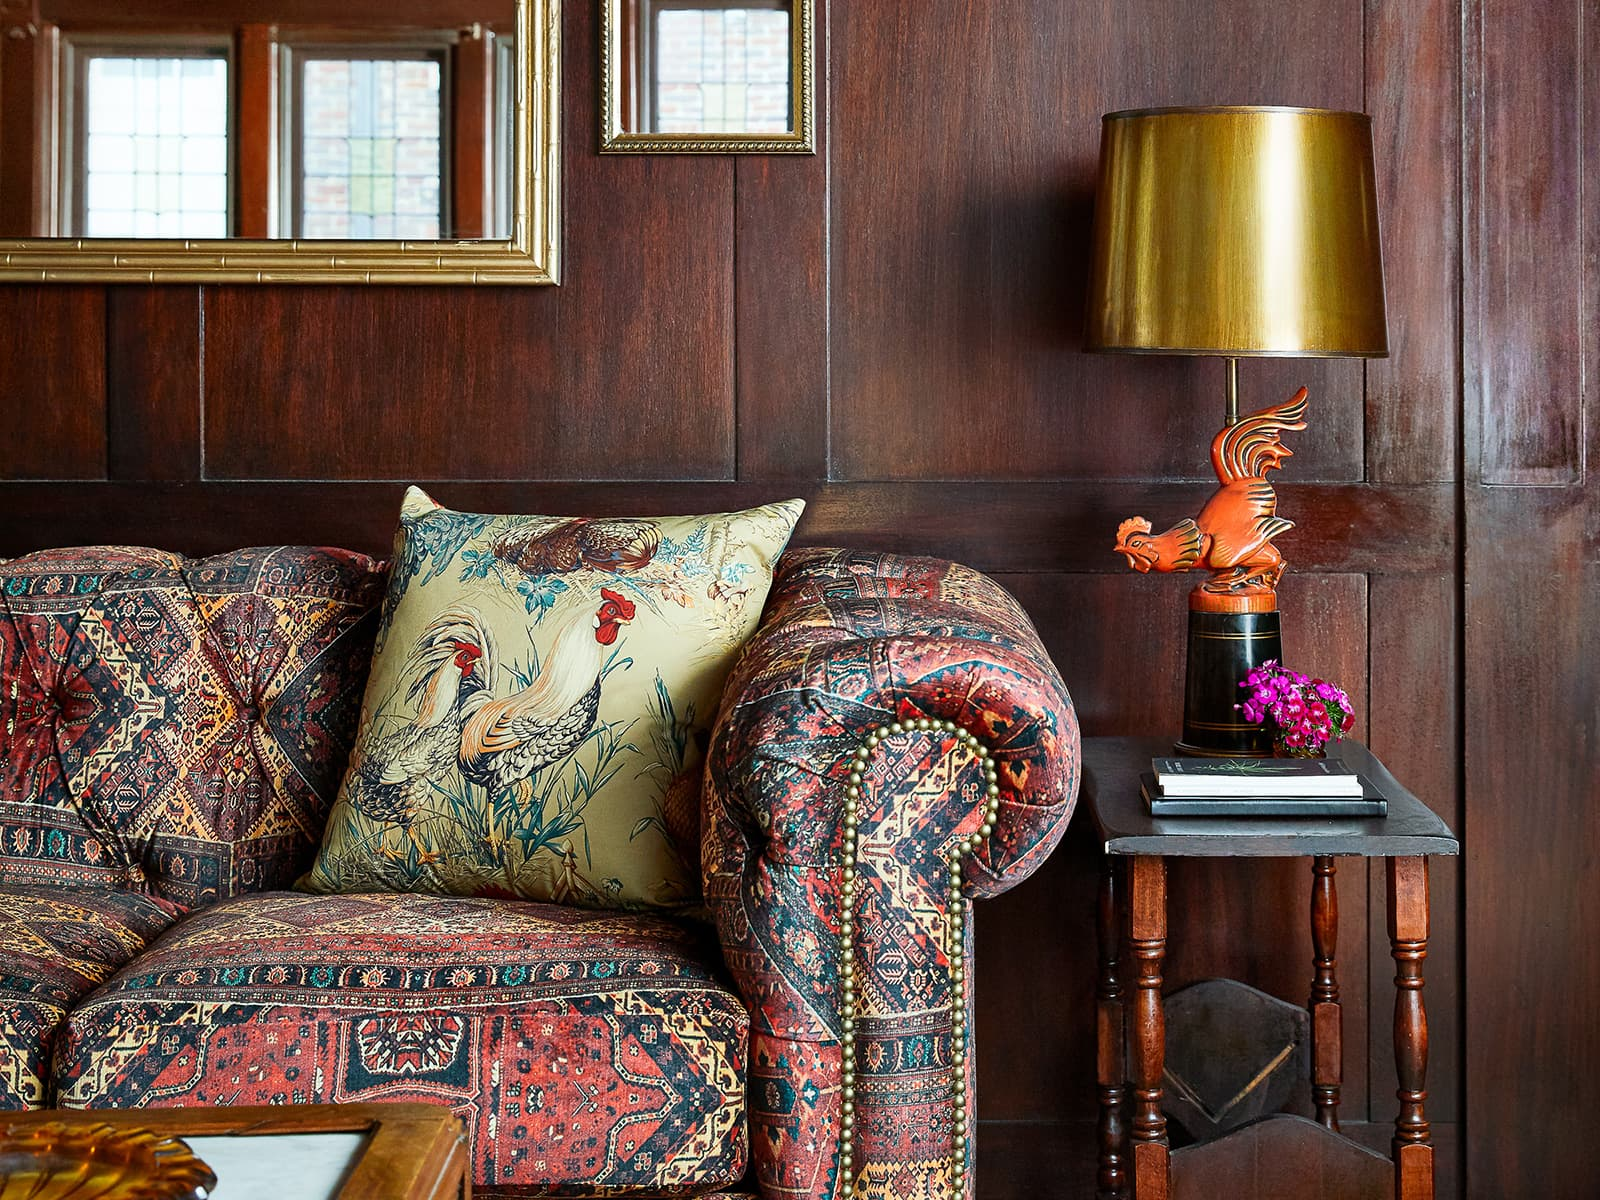 Patterned couch with a side table and rooster lamp